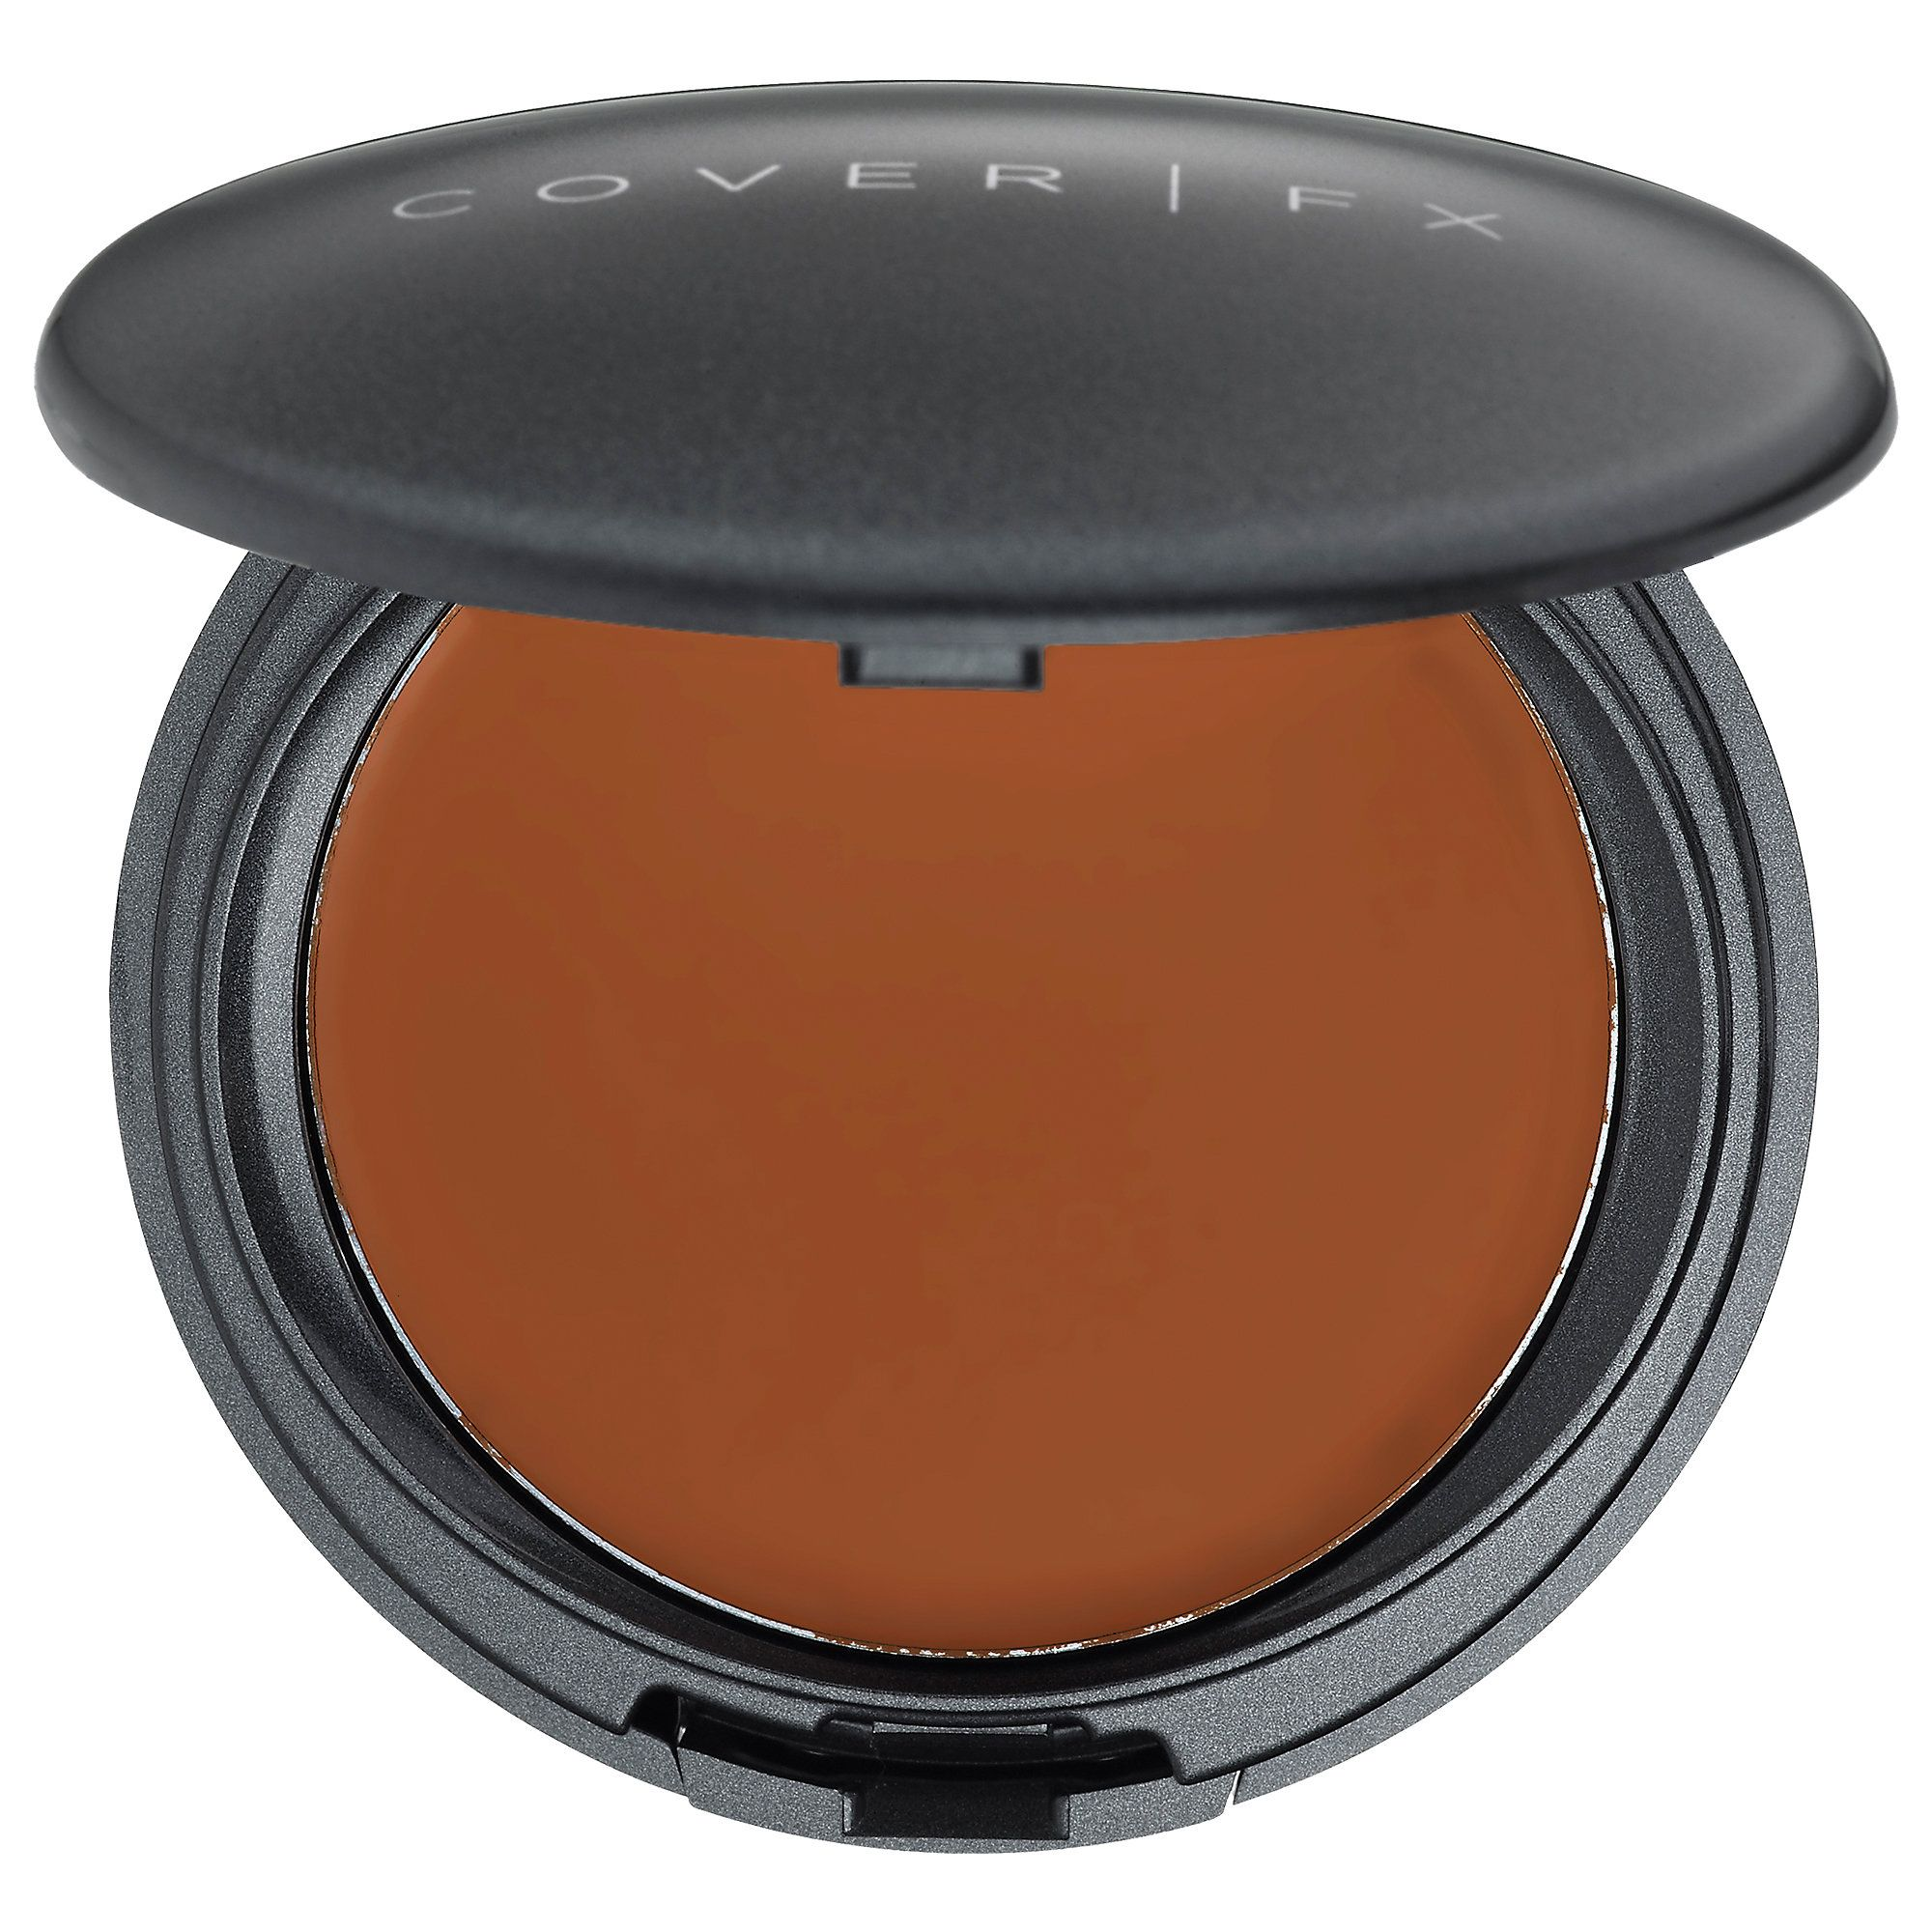 Shop COVER FX's Total Cover Cream Foundation in G100 for